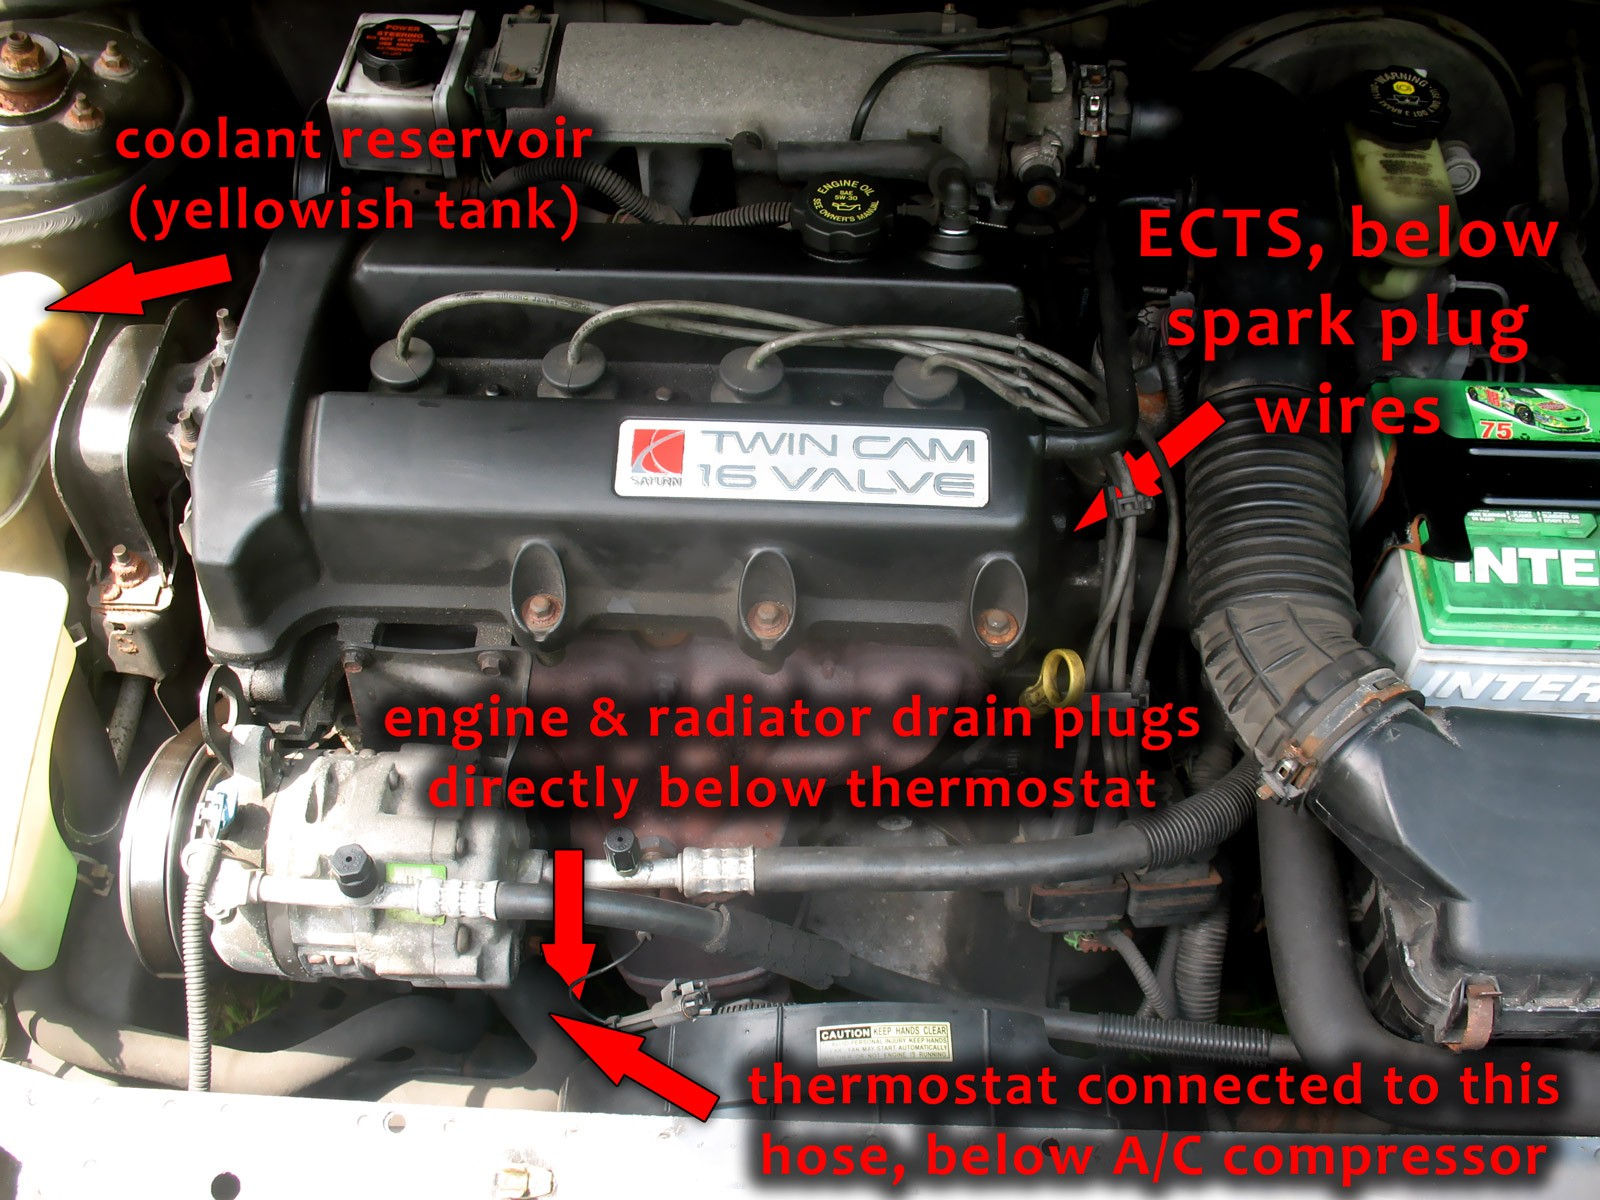 2001 saturn sl2 engine diagram sensor enthusiast wiring diagrams u2022 rh rasalibre co 2000 Saturn SL2 Engine Diagram 2002 saturn sl engine diagram